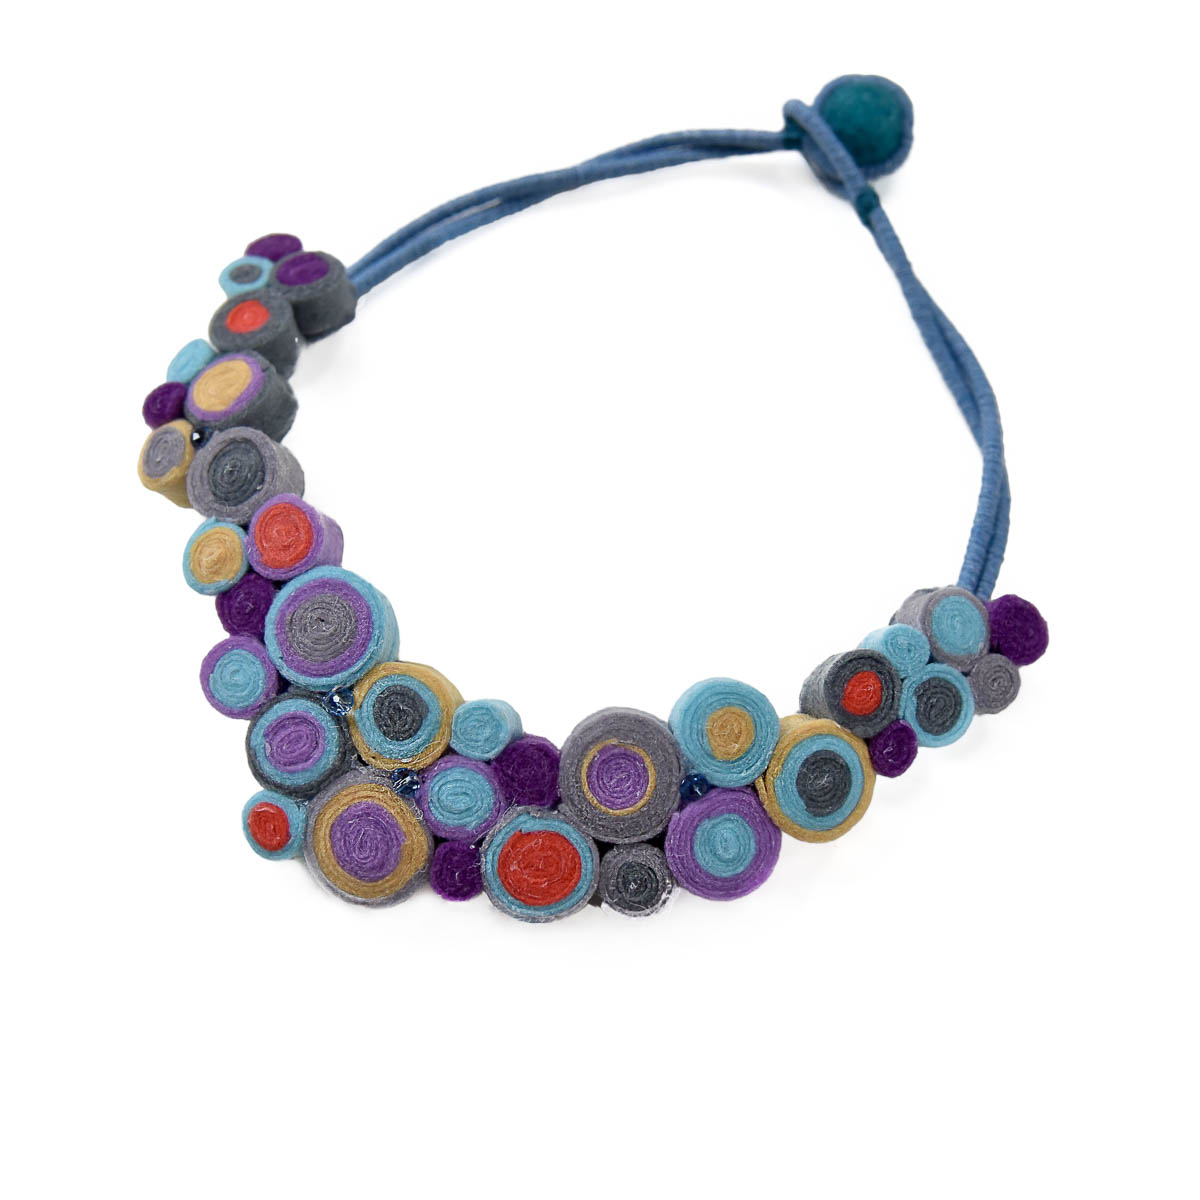 Blooming jewelry includes statement collar necklaces inspired by colorful flower gardens. The jewelry is made with felt beads and looks like a blooming garden. Designed and made by Katerina Glinou.